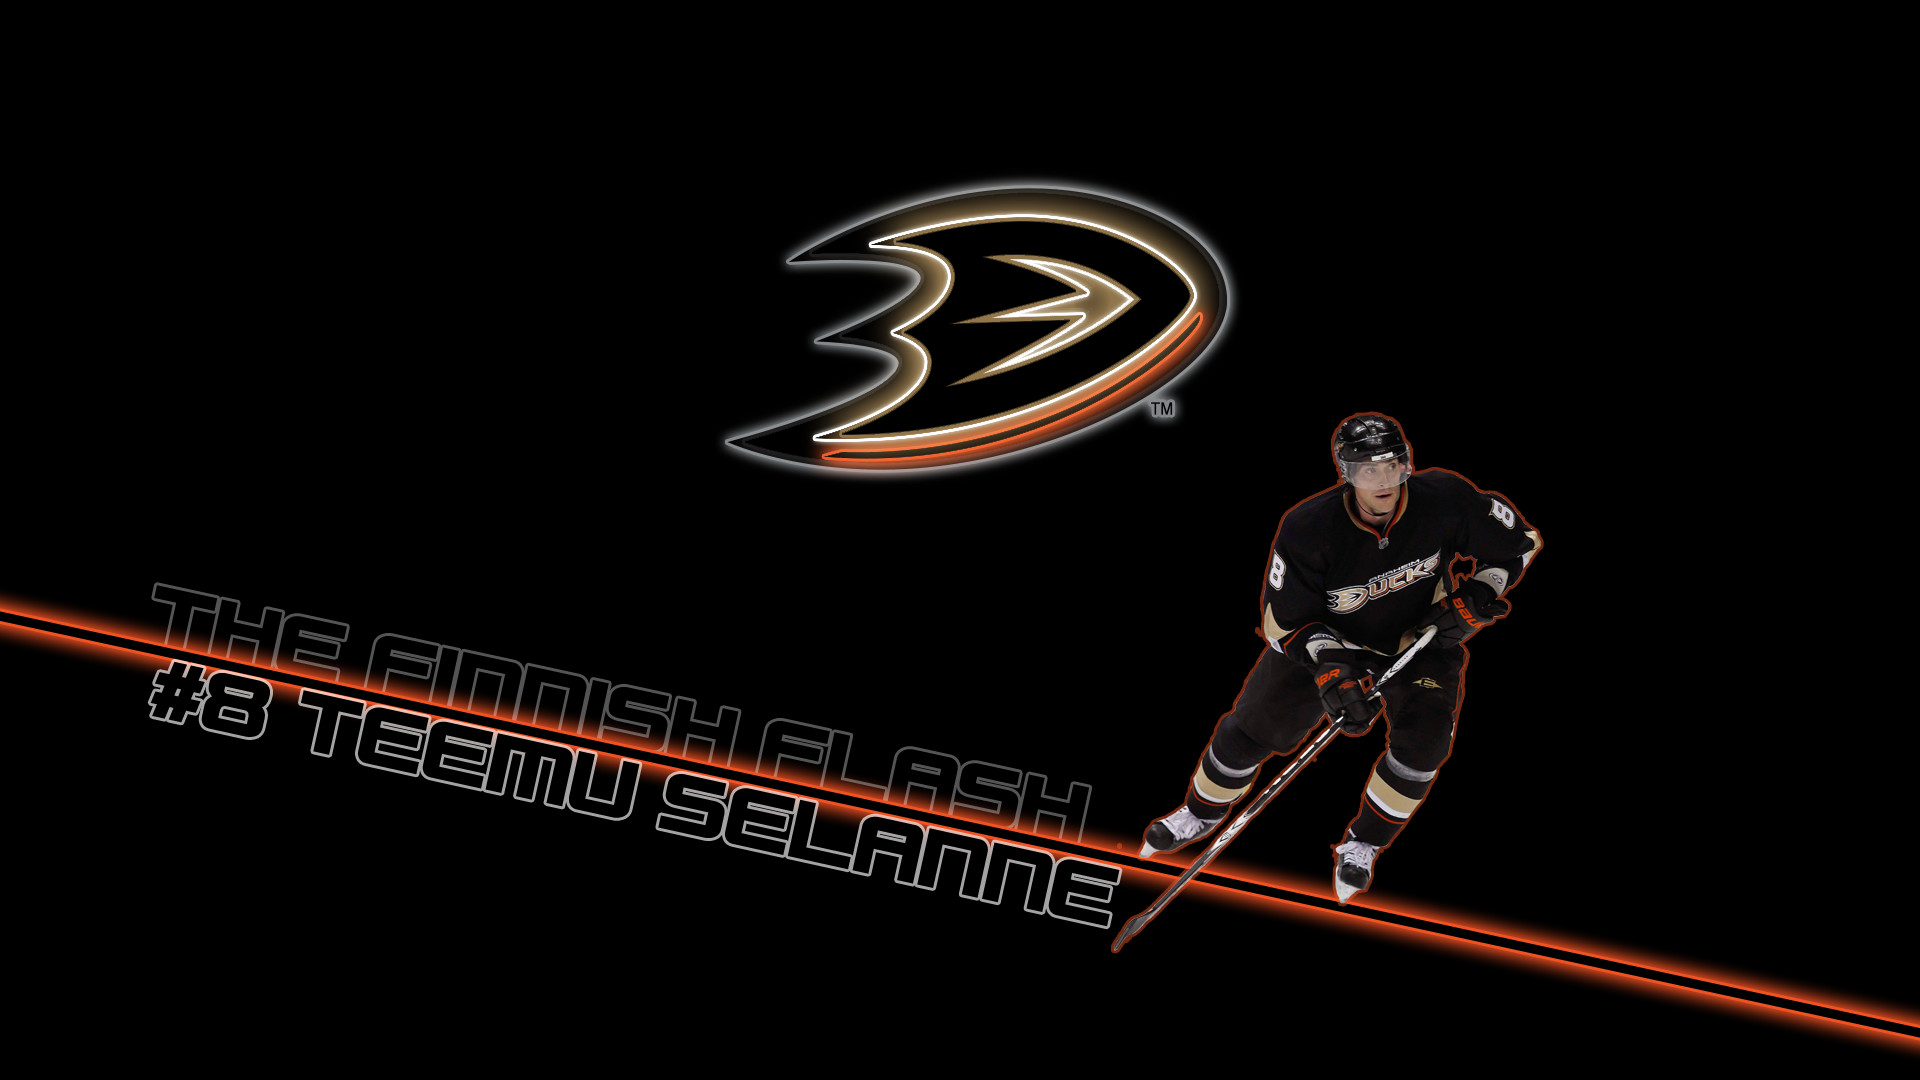 Backgrounds for Iphone: Anaheim Ducks